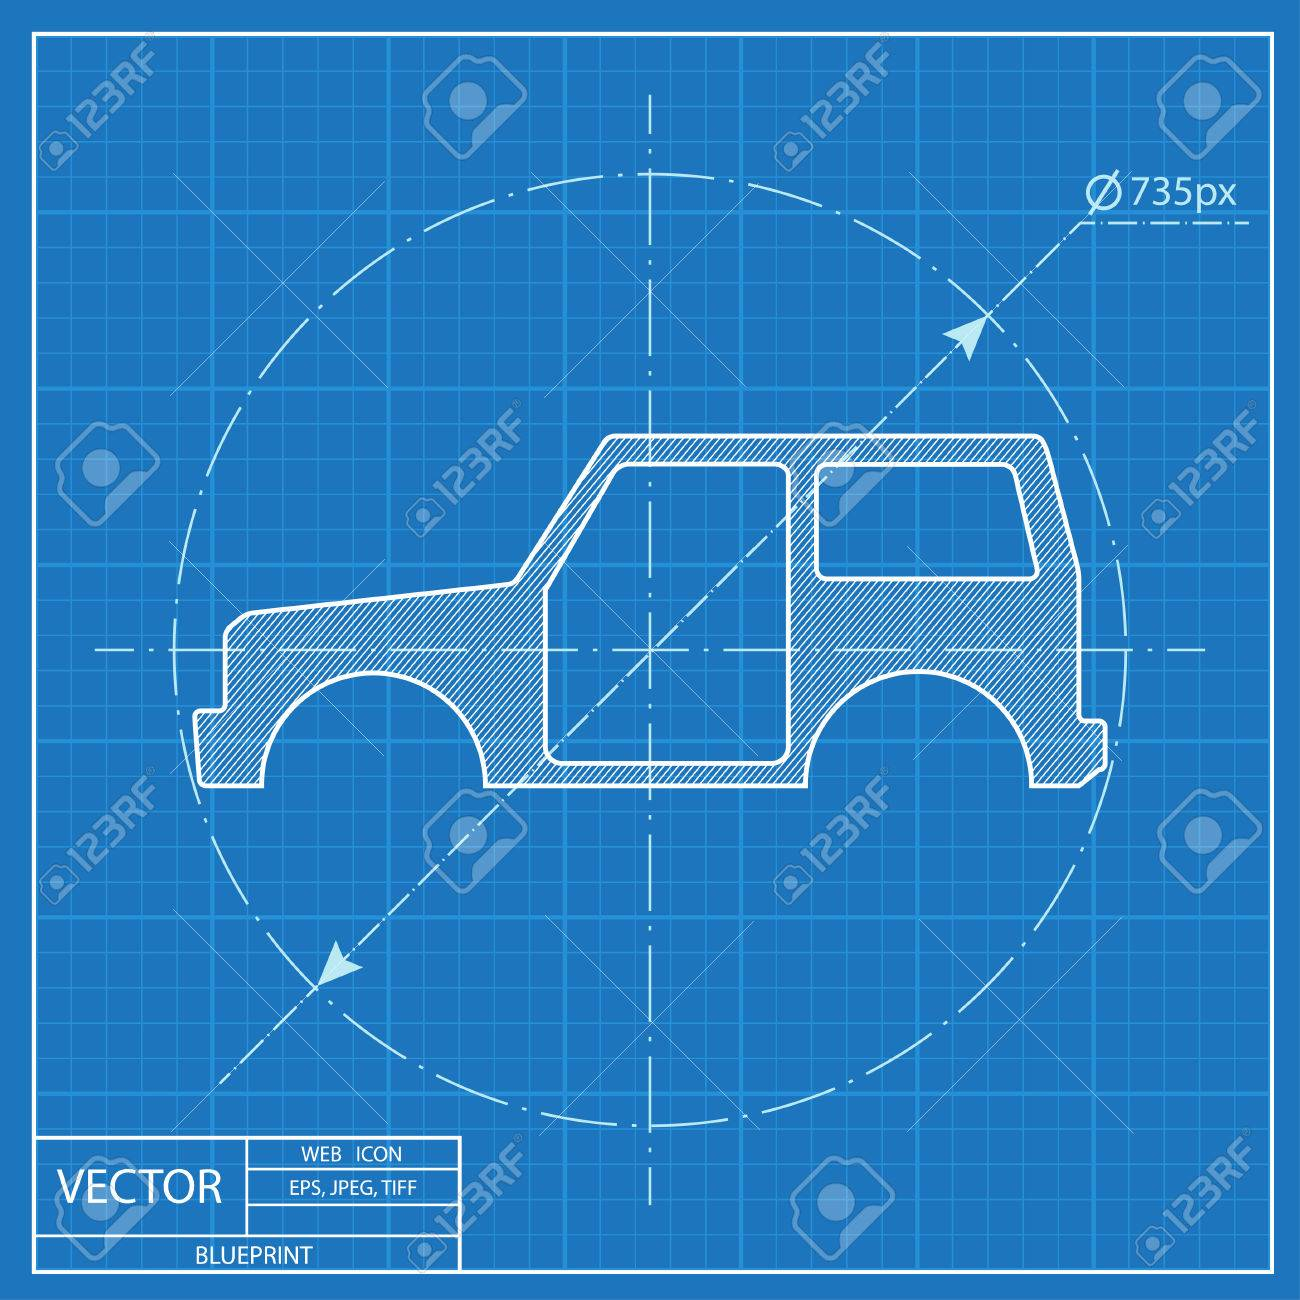 Icon of car body blueprint style royalty free cliparts vectors icon of car body blueprint style stock vector 55573019 malvernweather Gallery